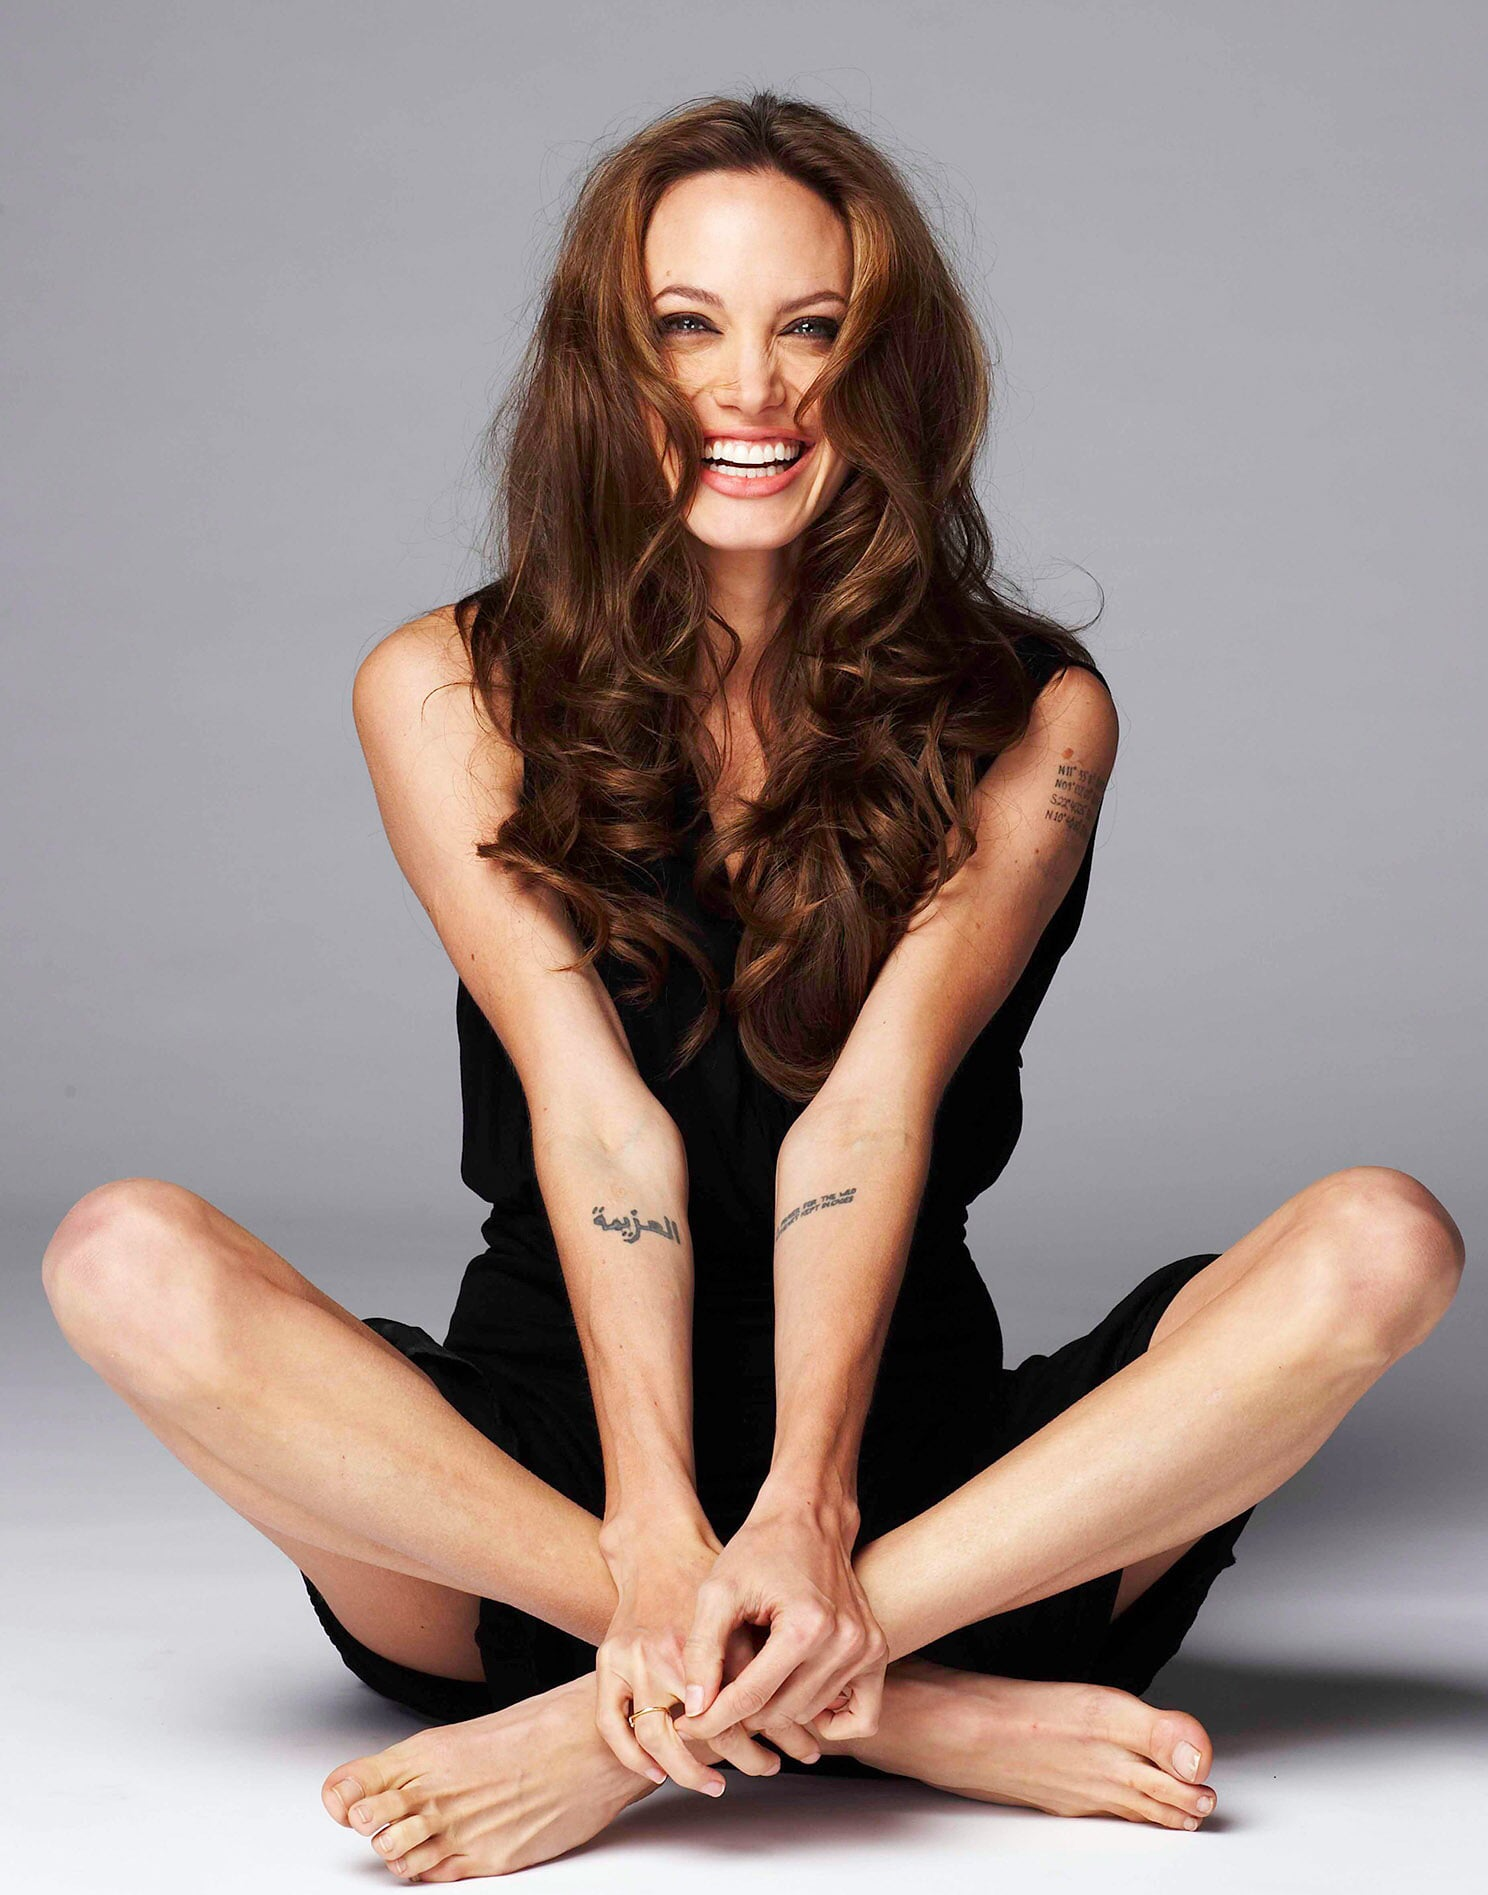 49 Sexy Angelina Jolie Feet Pictures Which Prove She Is The Sexiest Woman On The Planet | Best ...